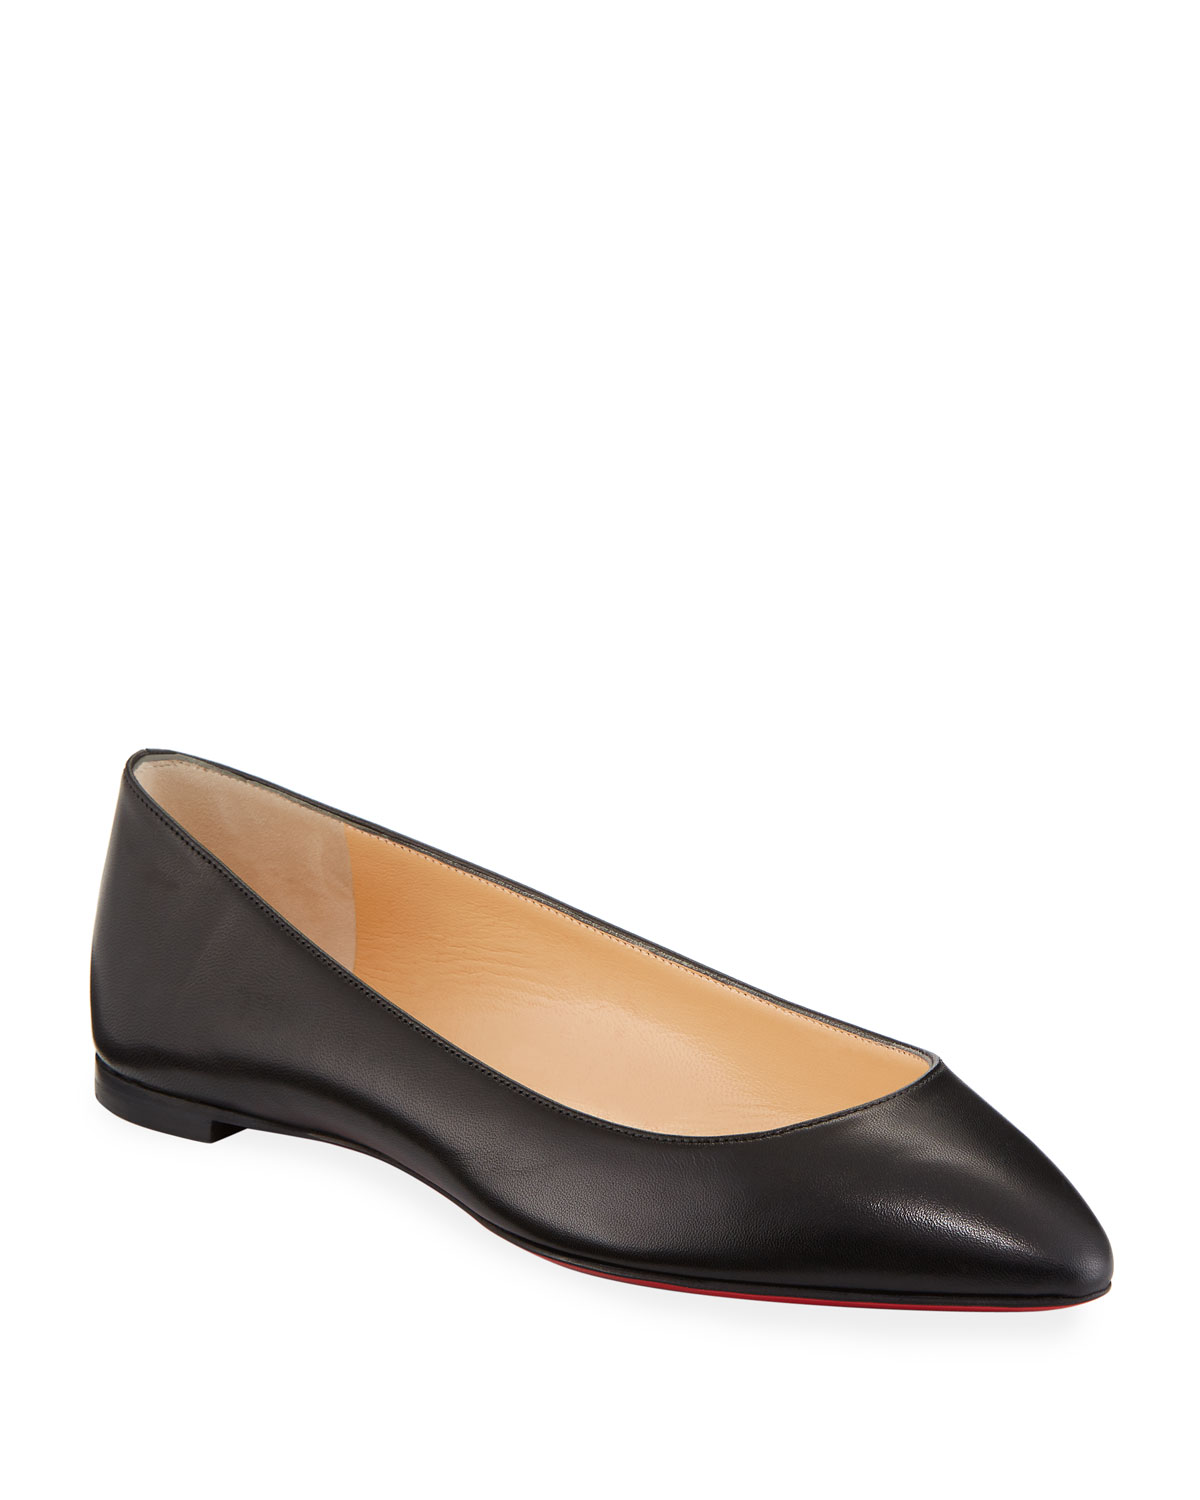 finest selection 86716 3d2ff Eloise Napa Leather Red Sole Flat